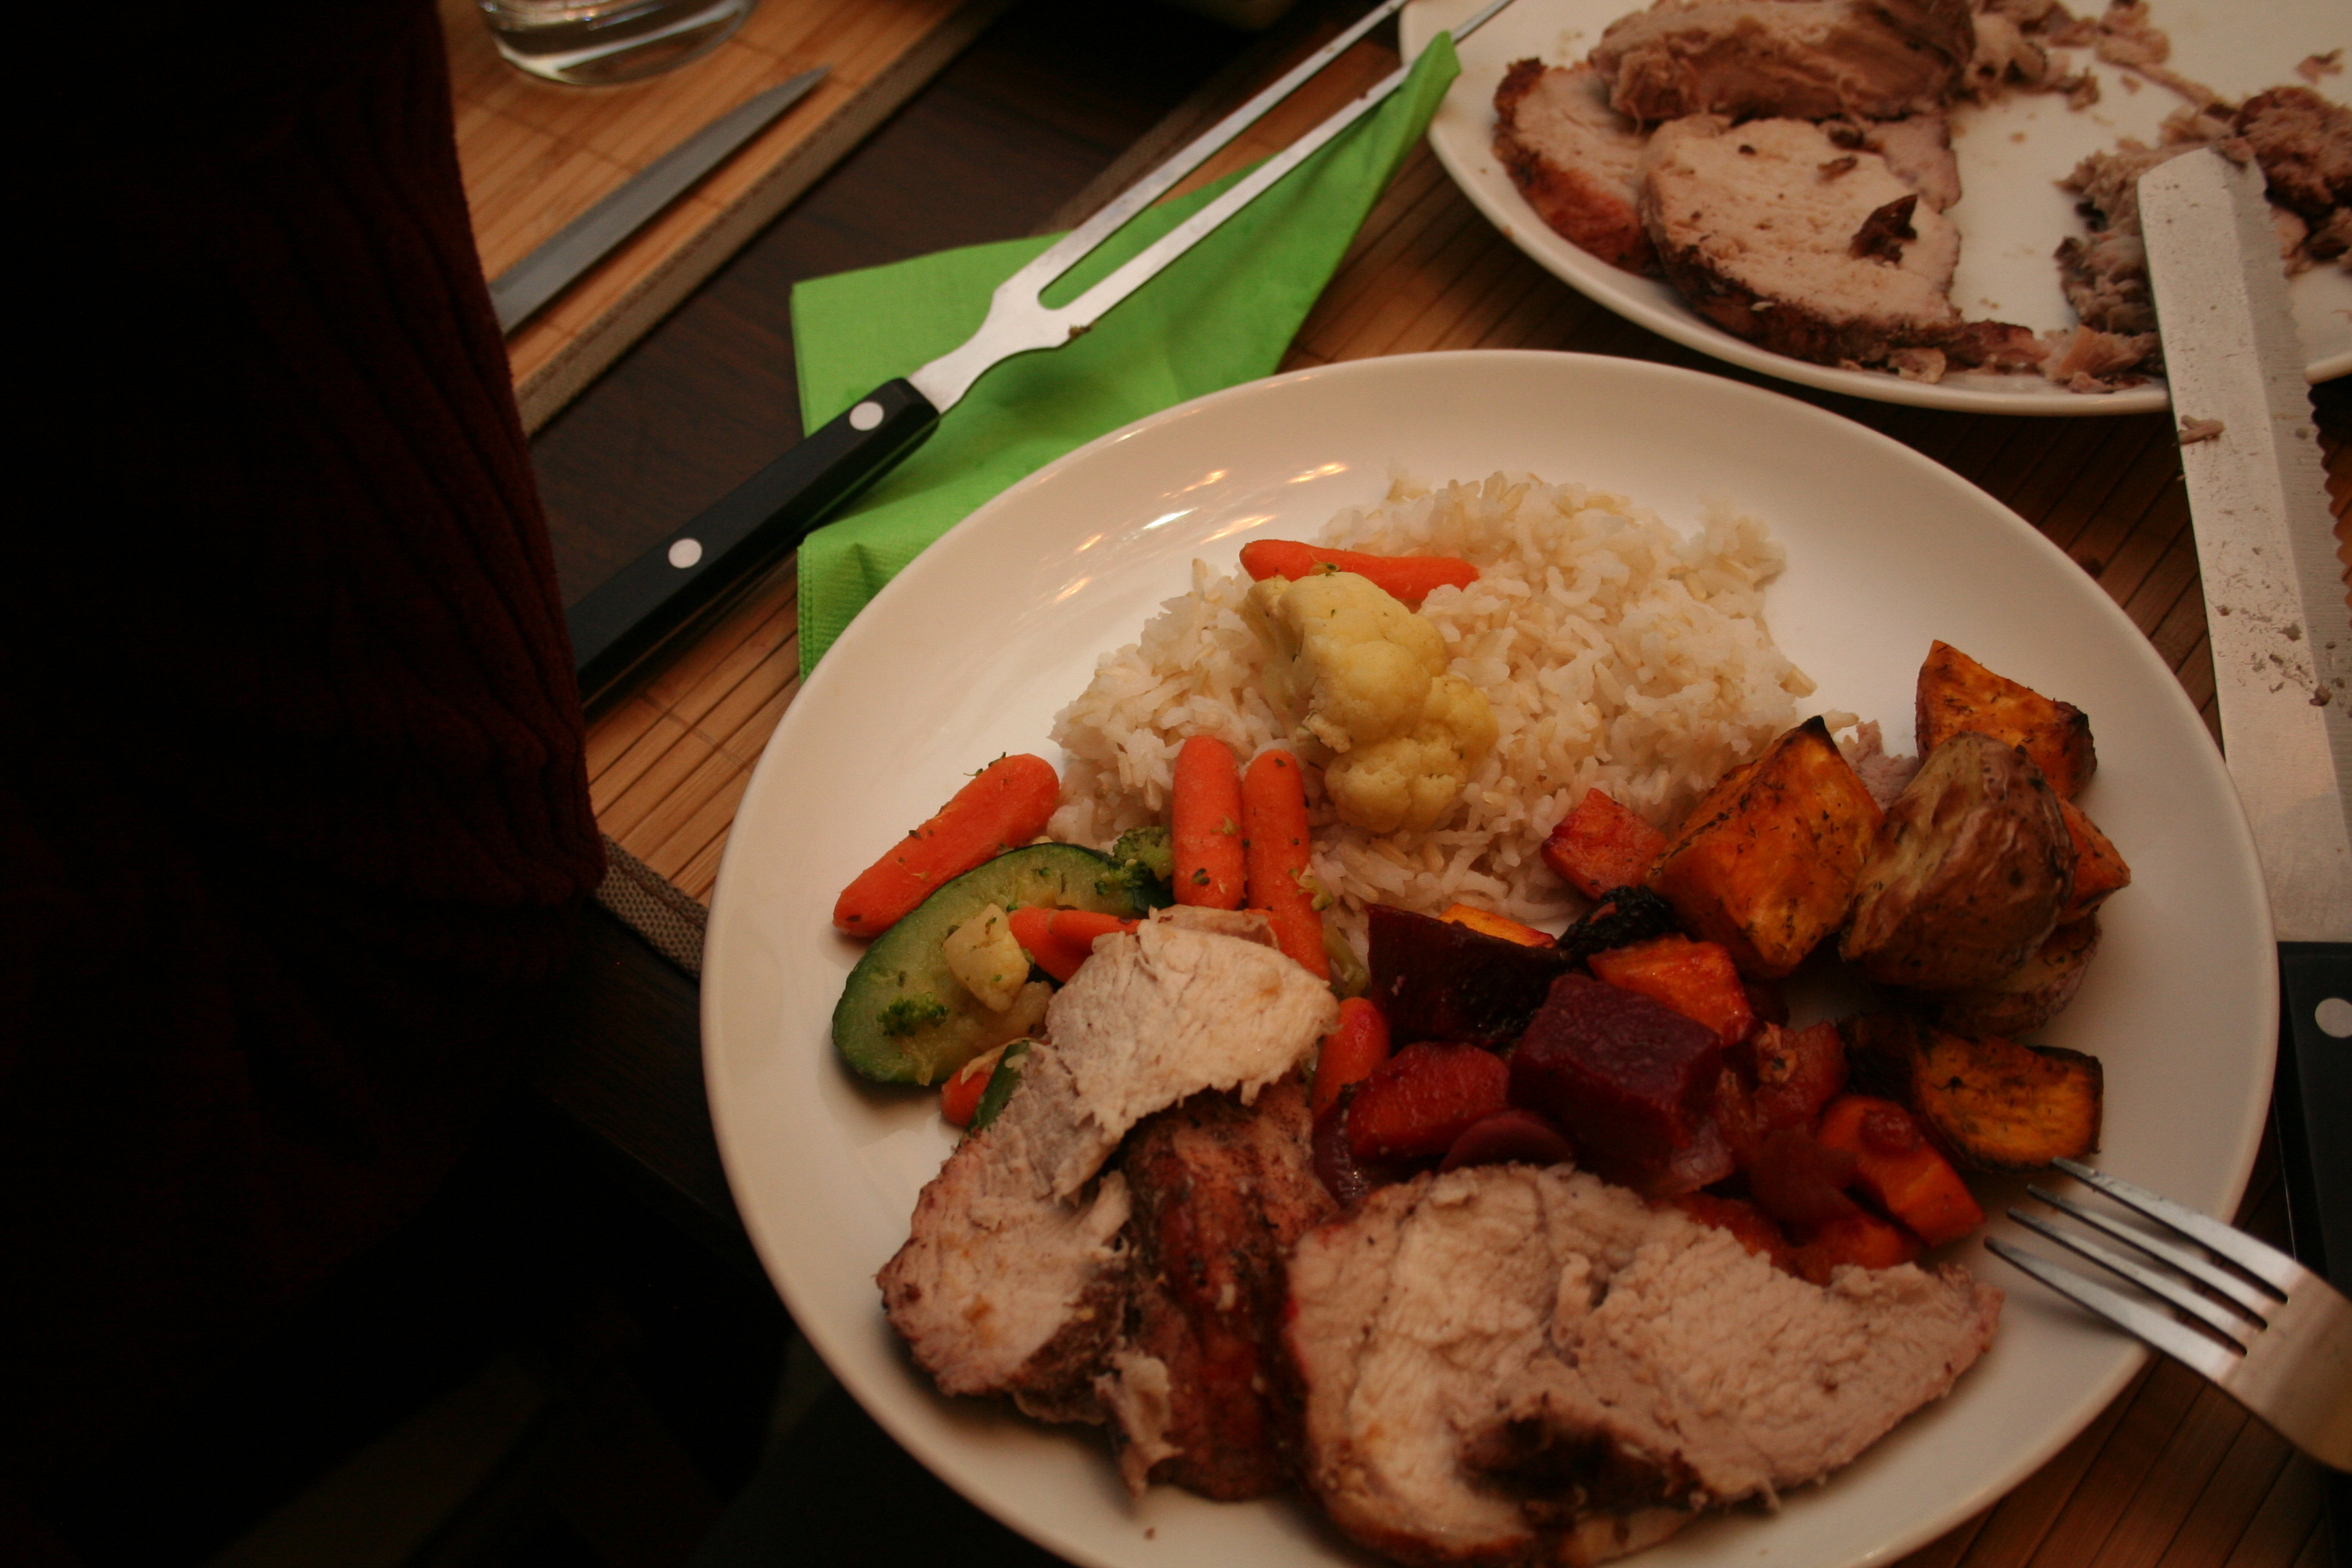 Roasted pork with carrots, sweet potato, beet. Served with stir-fry ...